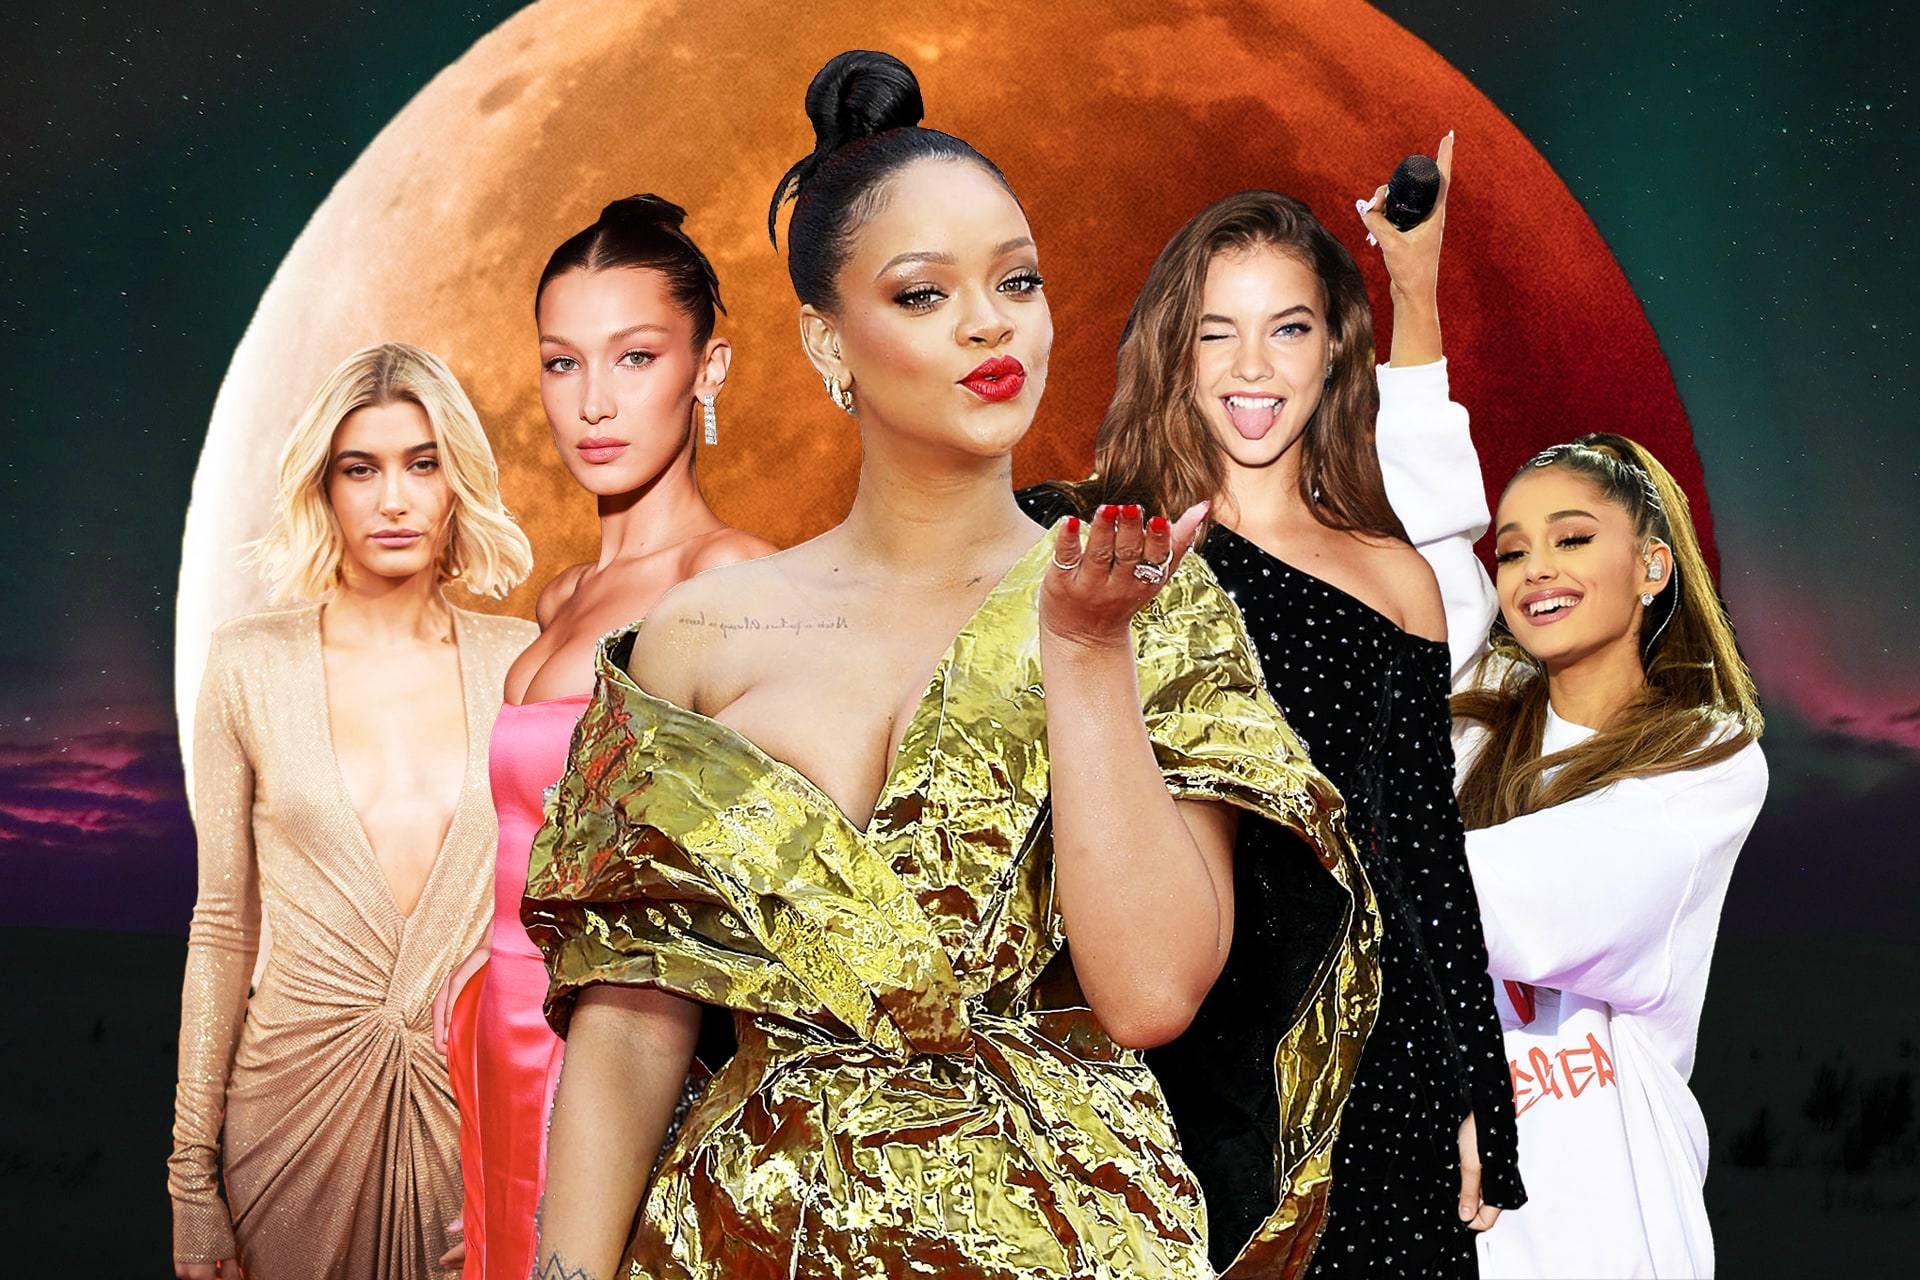 What 2019 has in store for you according to your horoscope